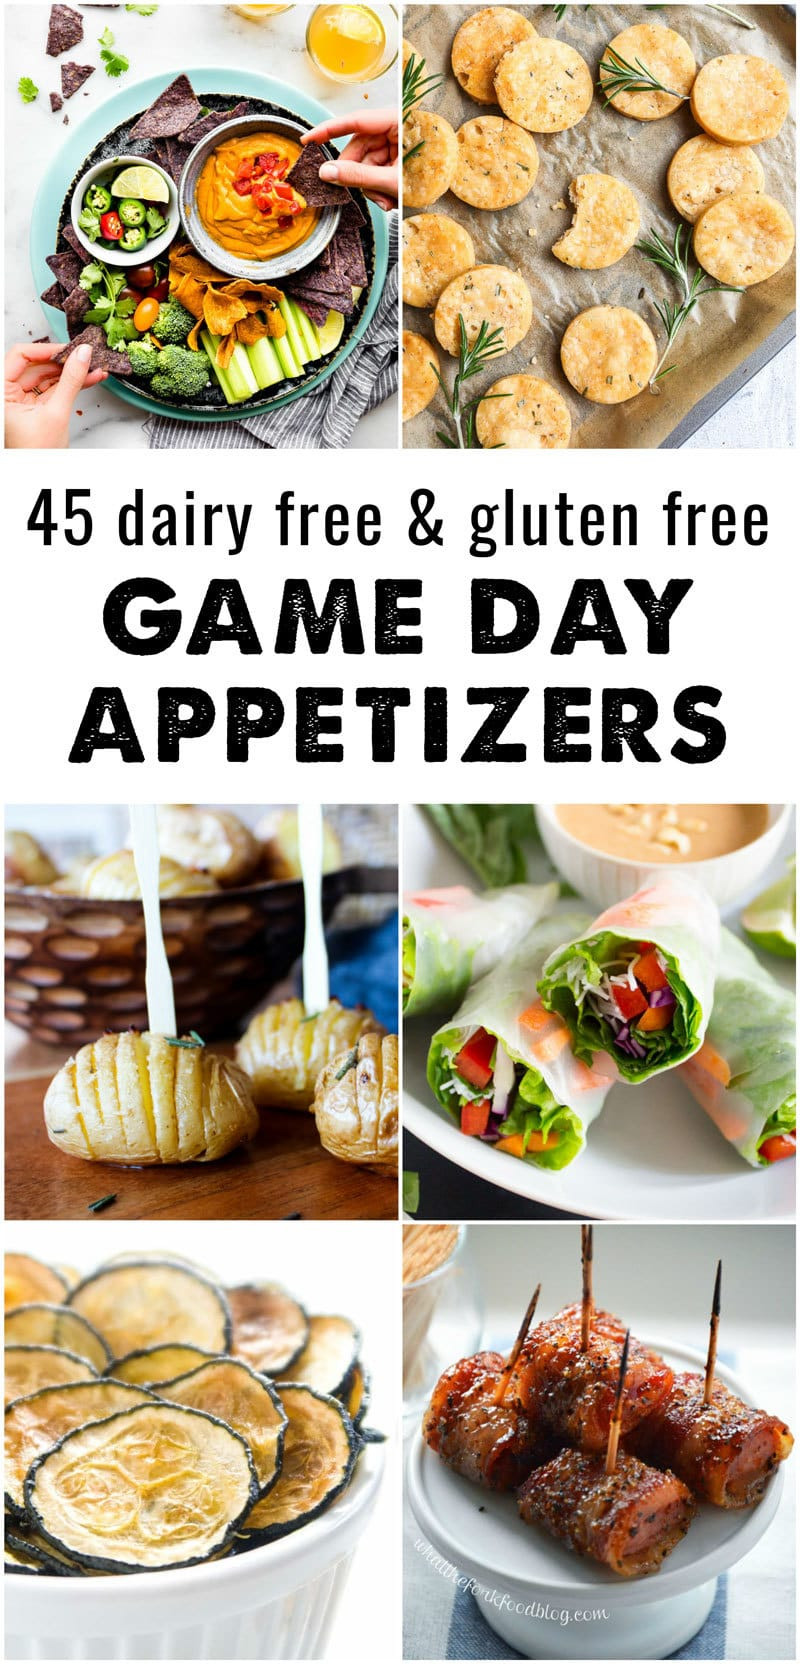 Gluten And Dairy Free Appetizers  45 Dairy Free and Gluten Free Appetizers • The Fit Cookie